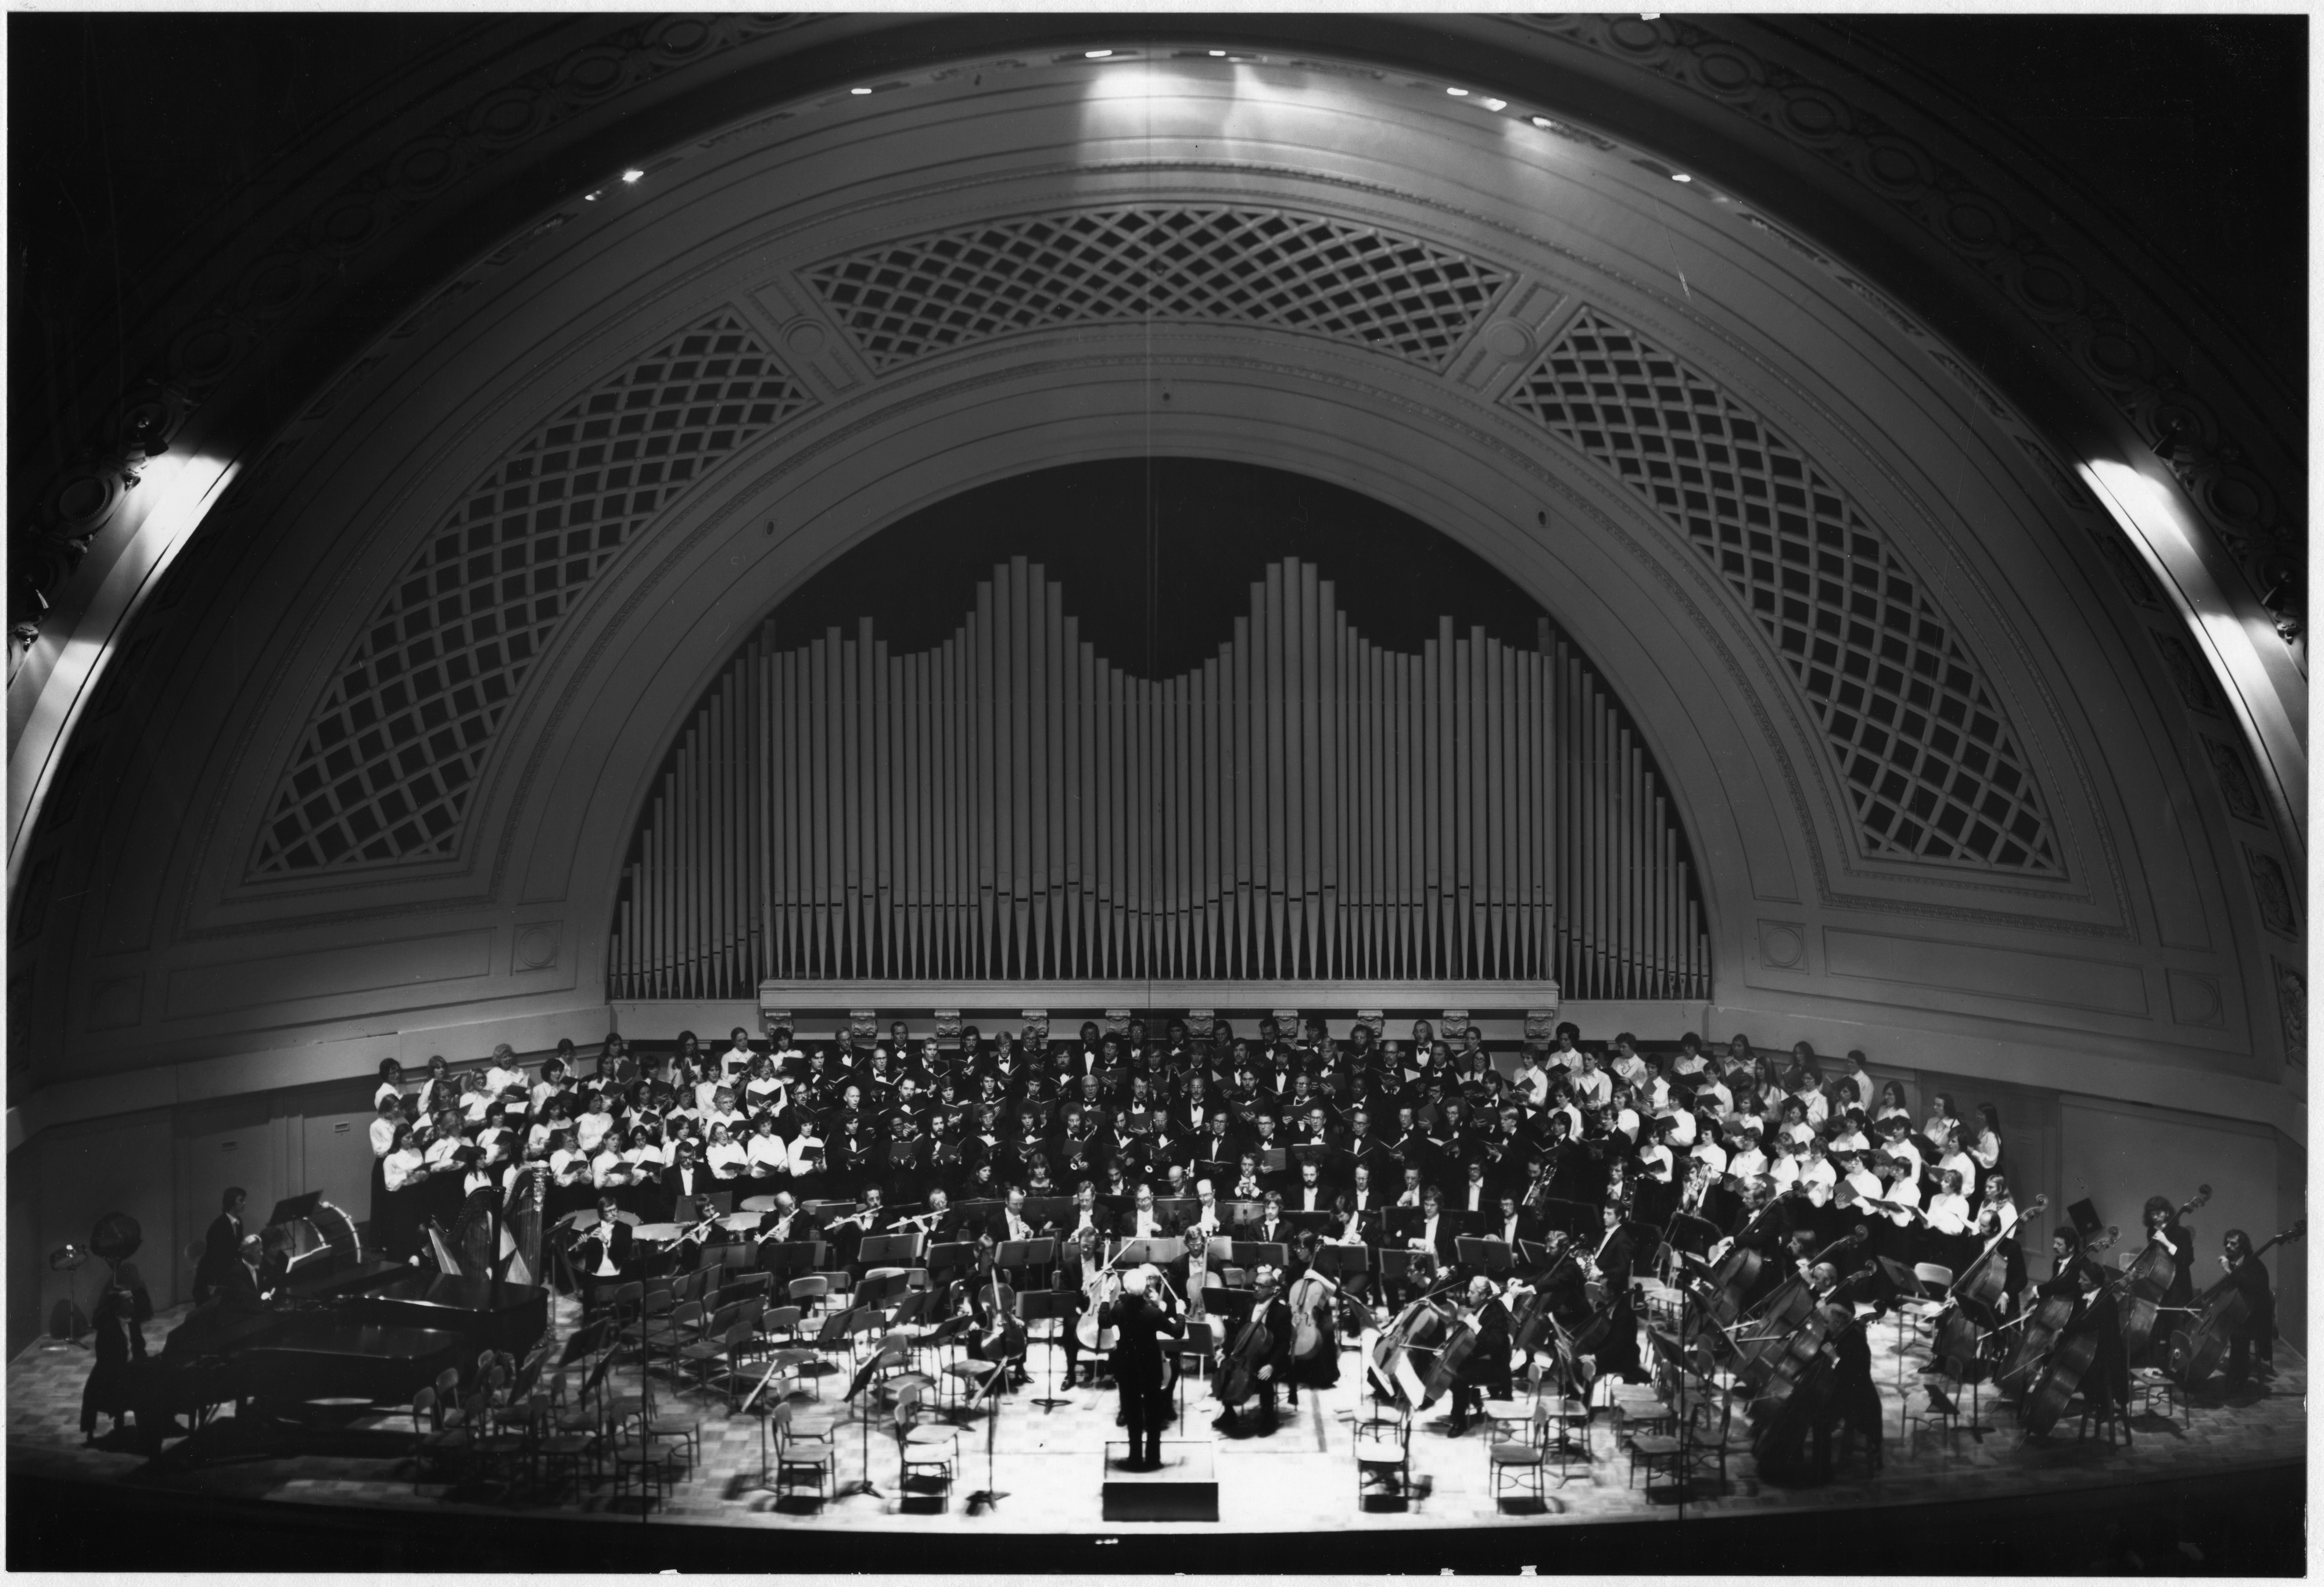 The Hague Philharmonic, October 5, 1975 image